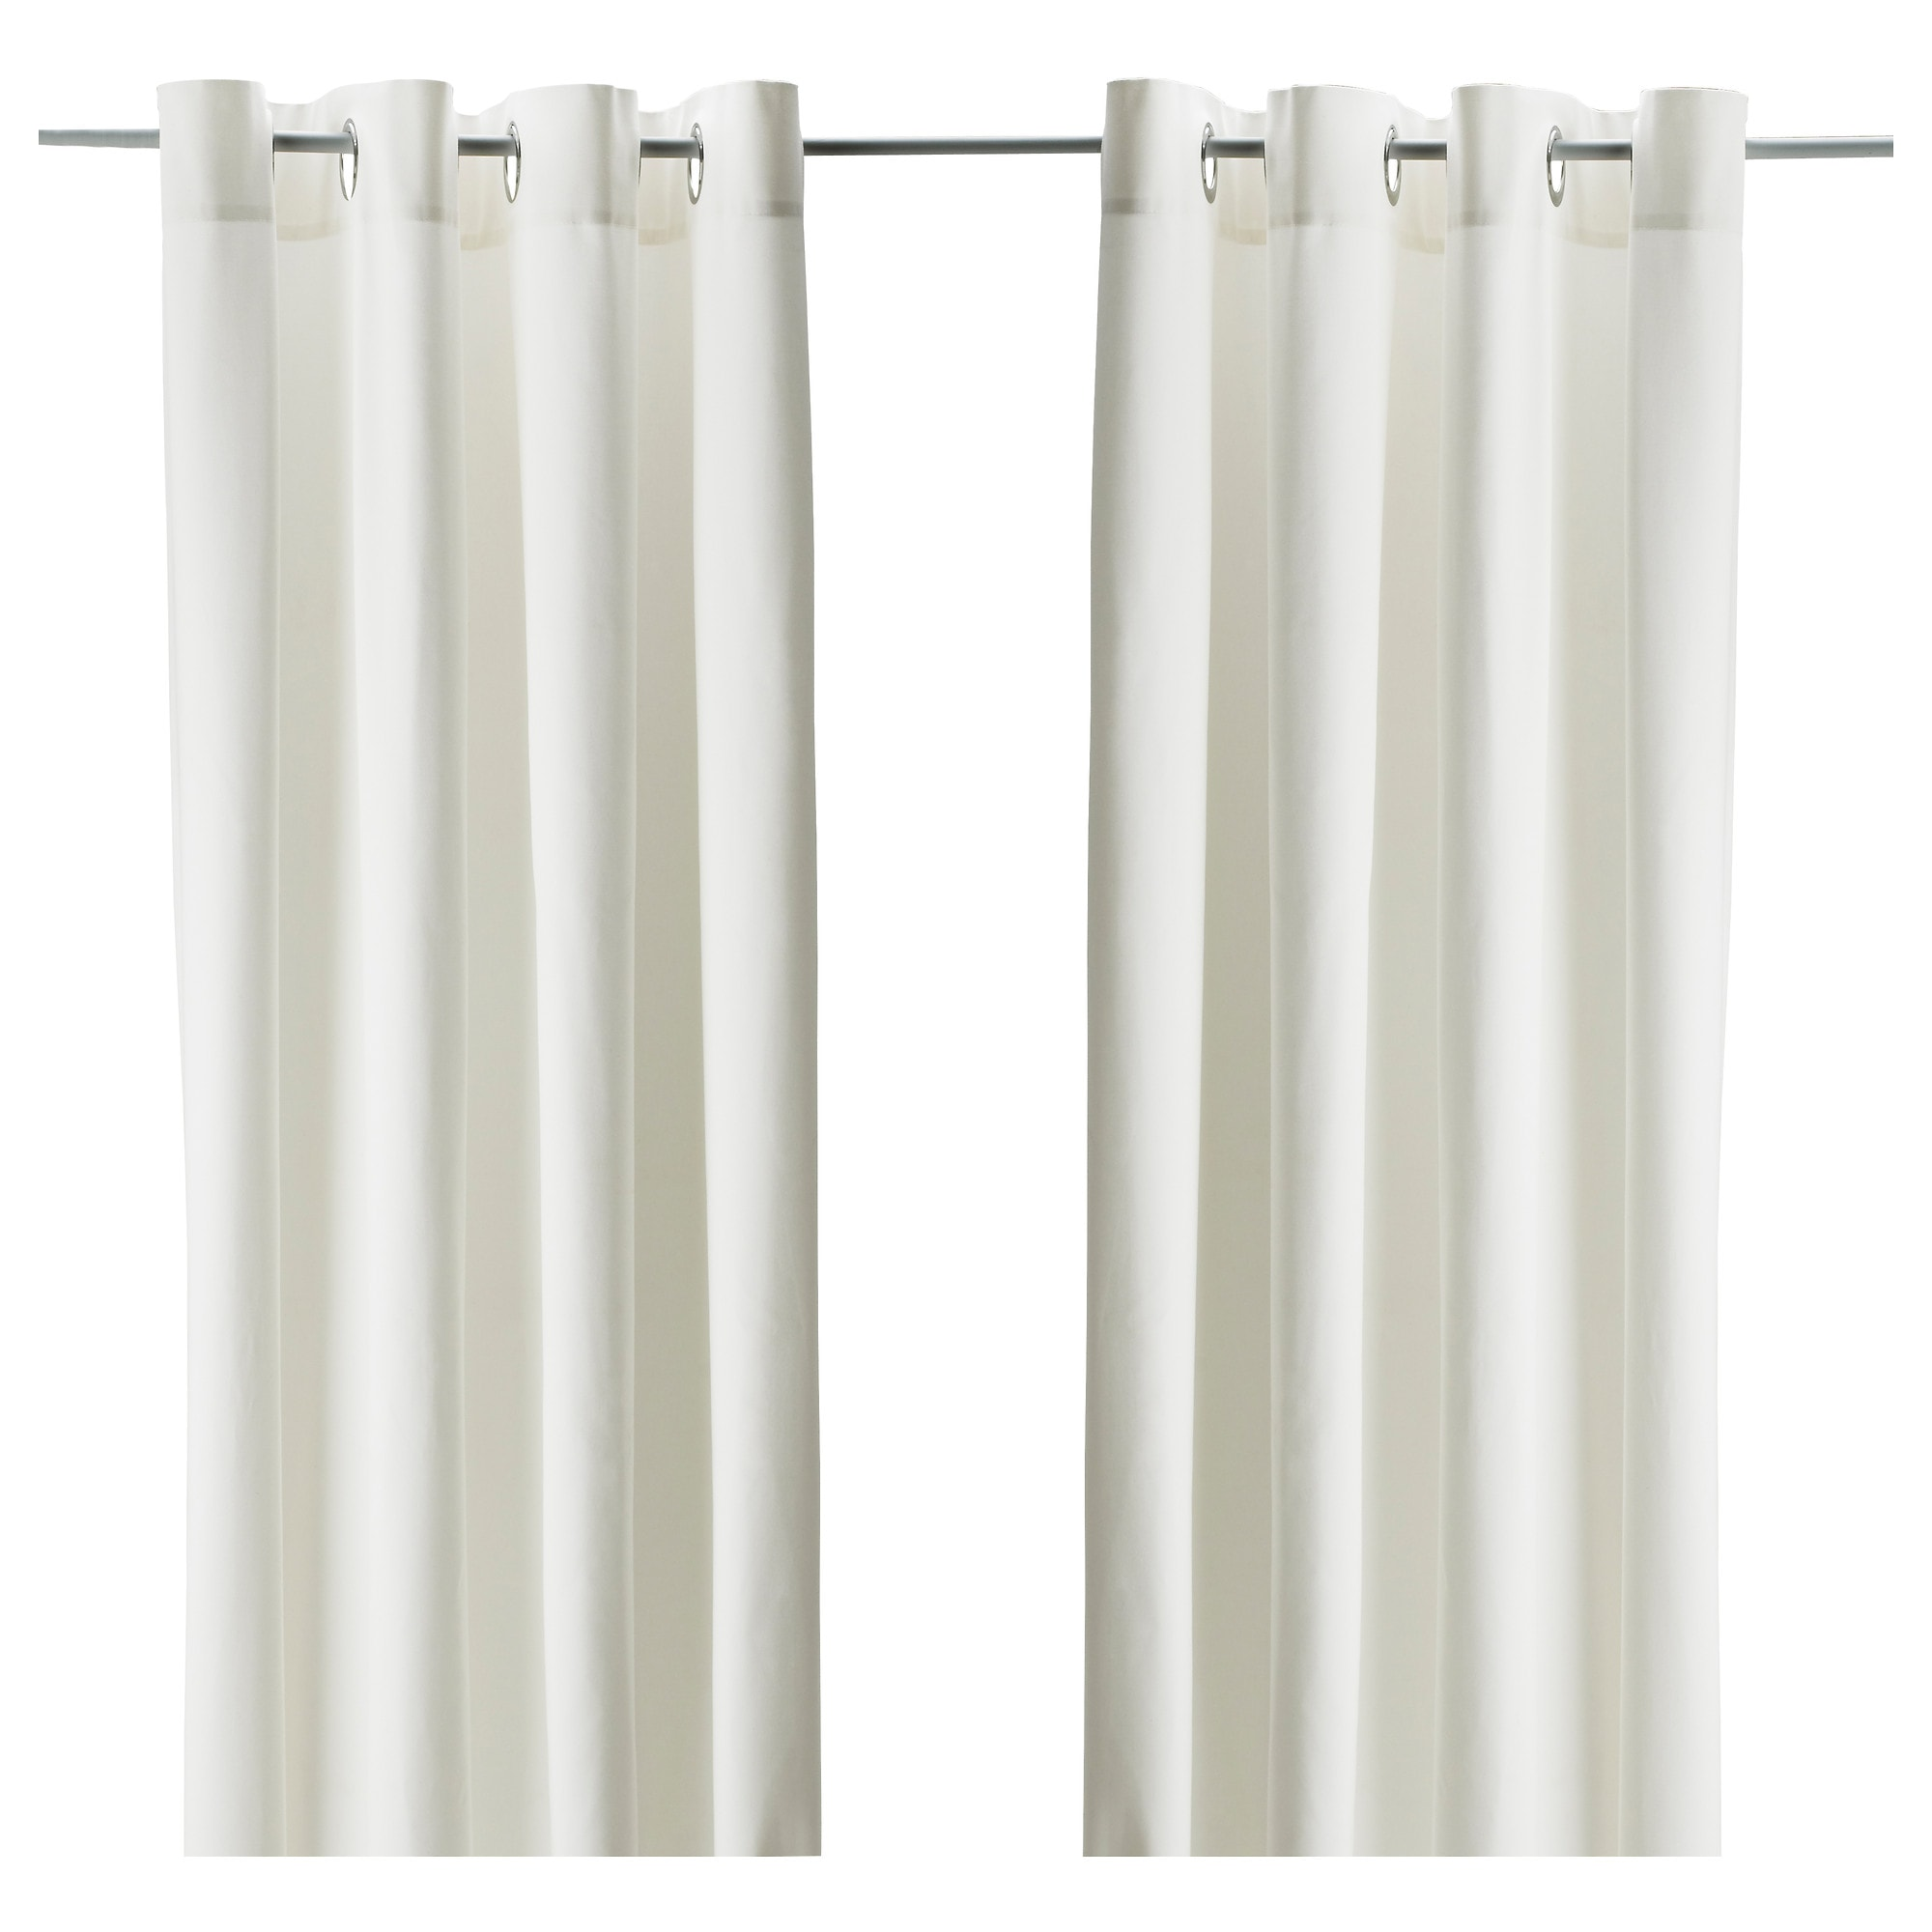 White curtain panels - White Curtain Panels 8